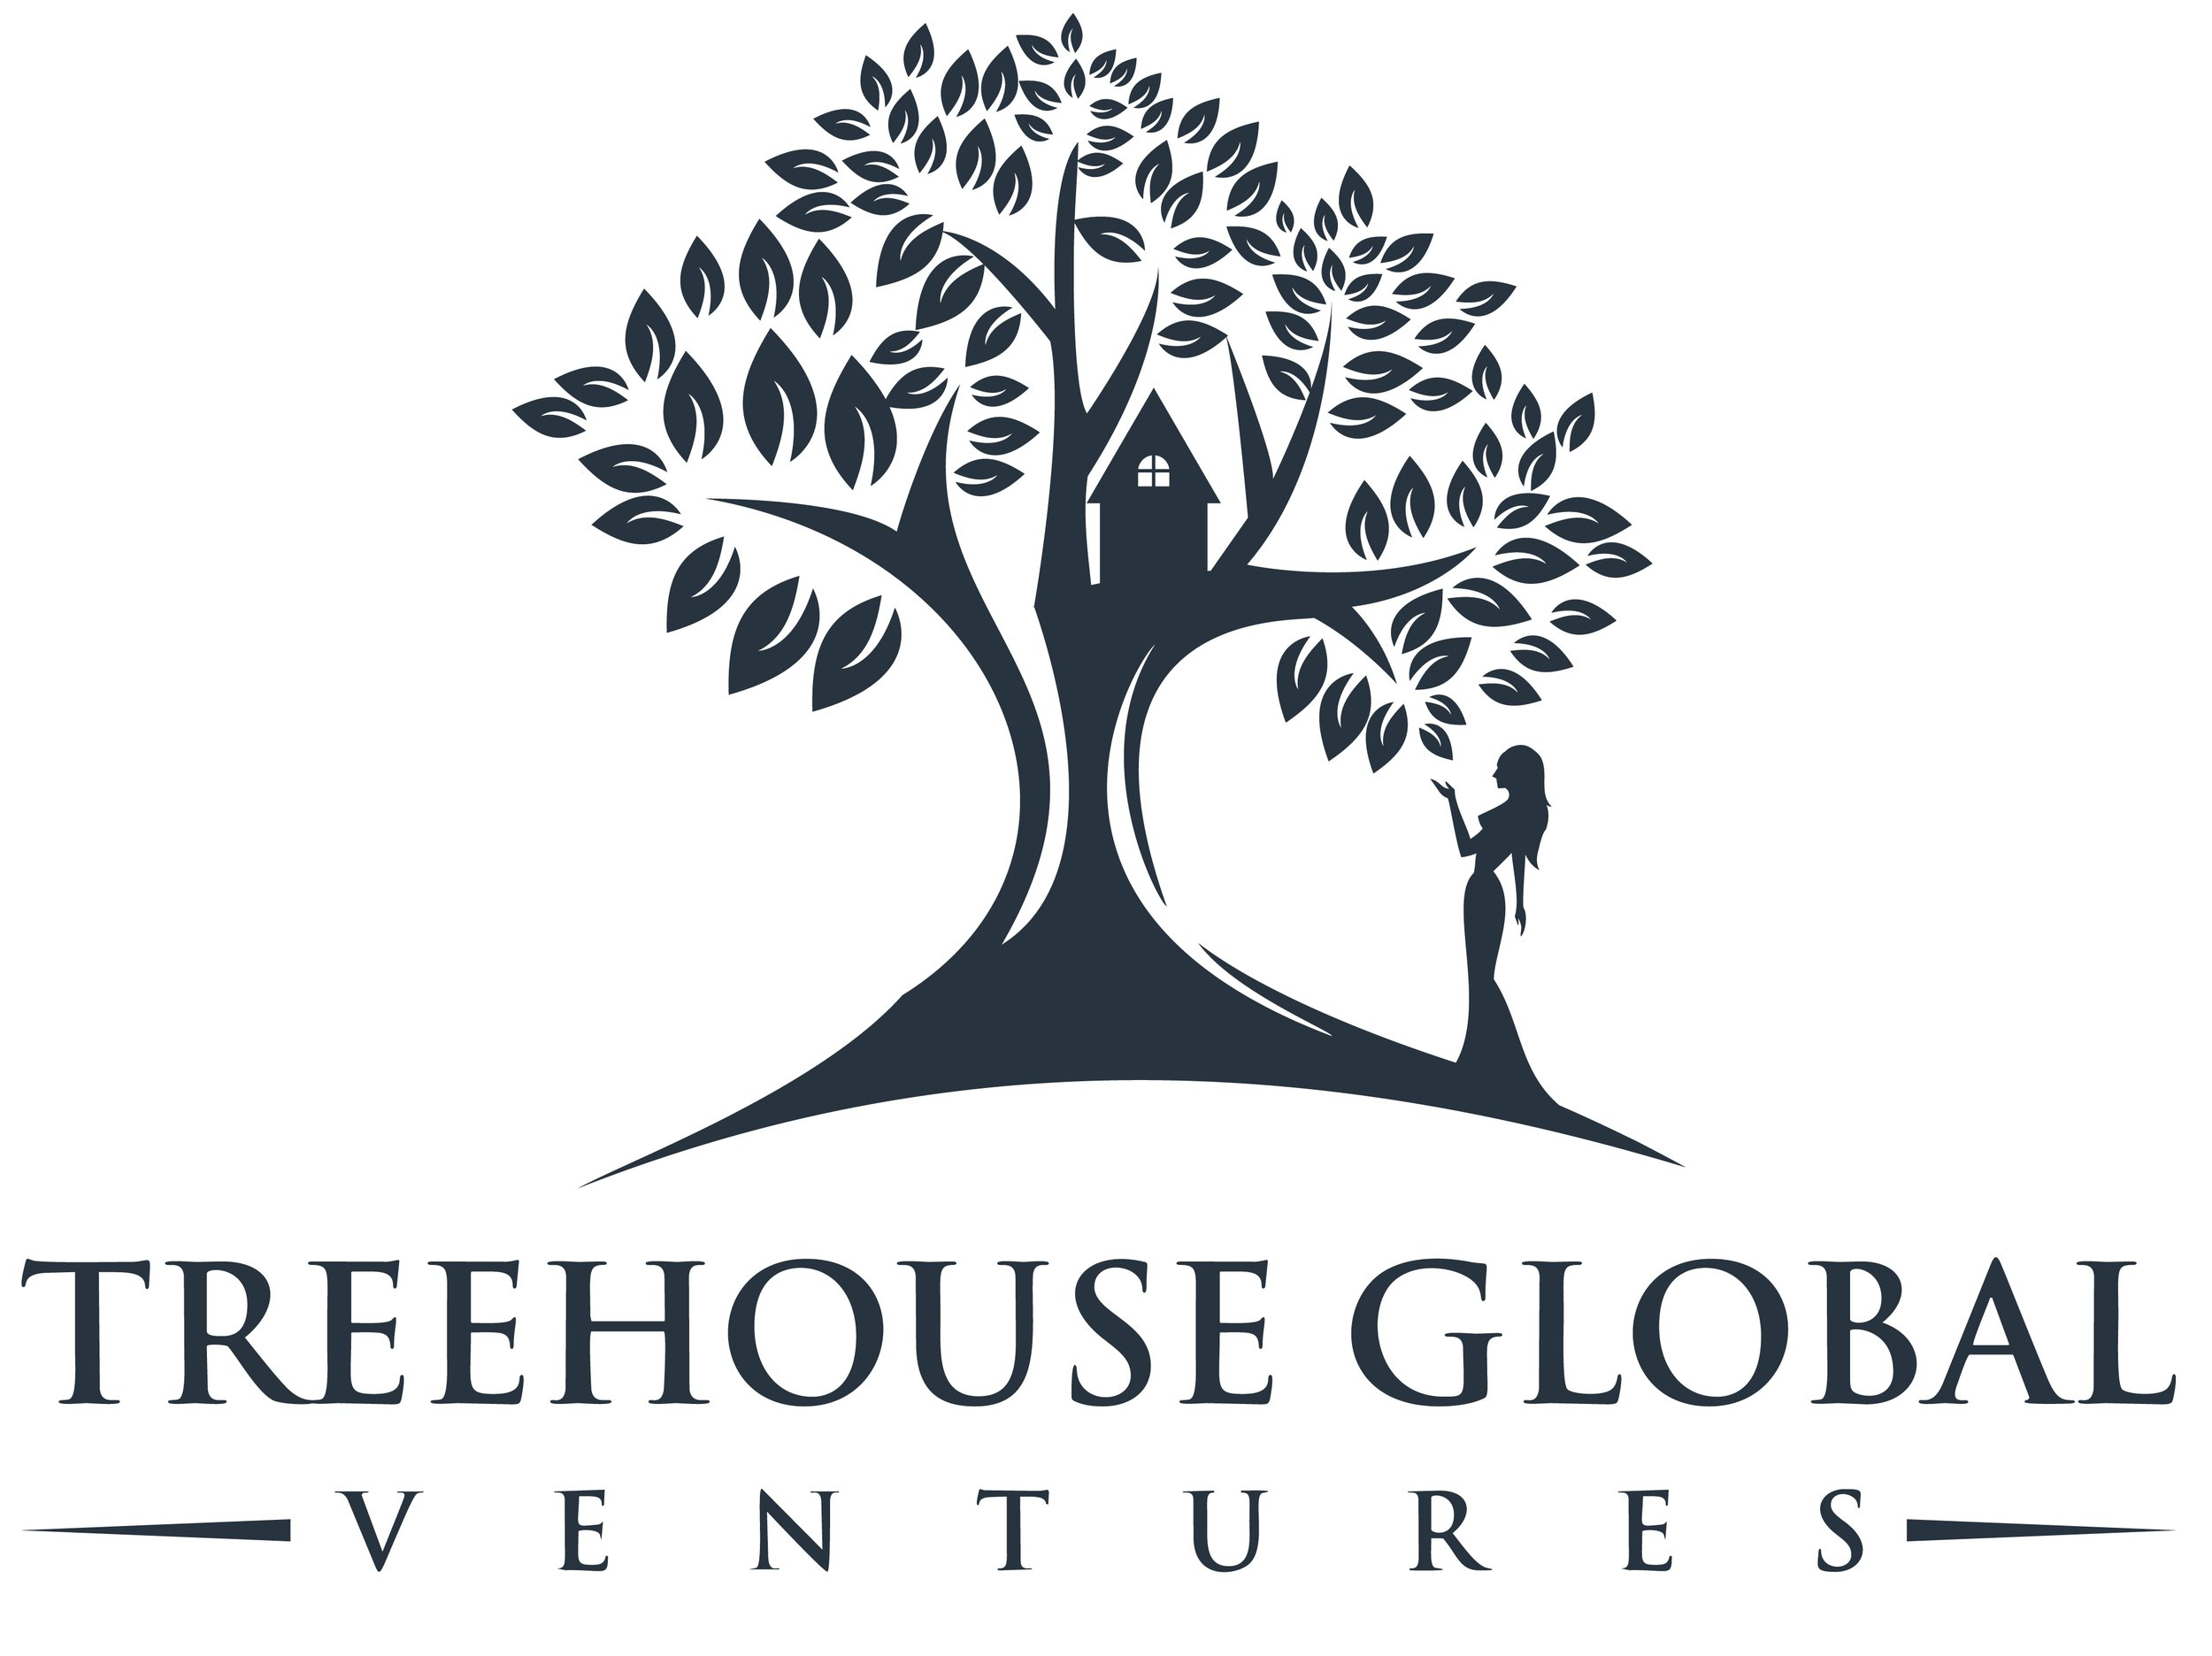 Treehouse Global Ventures Logo New.jpg